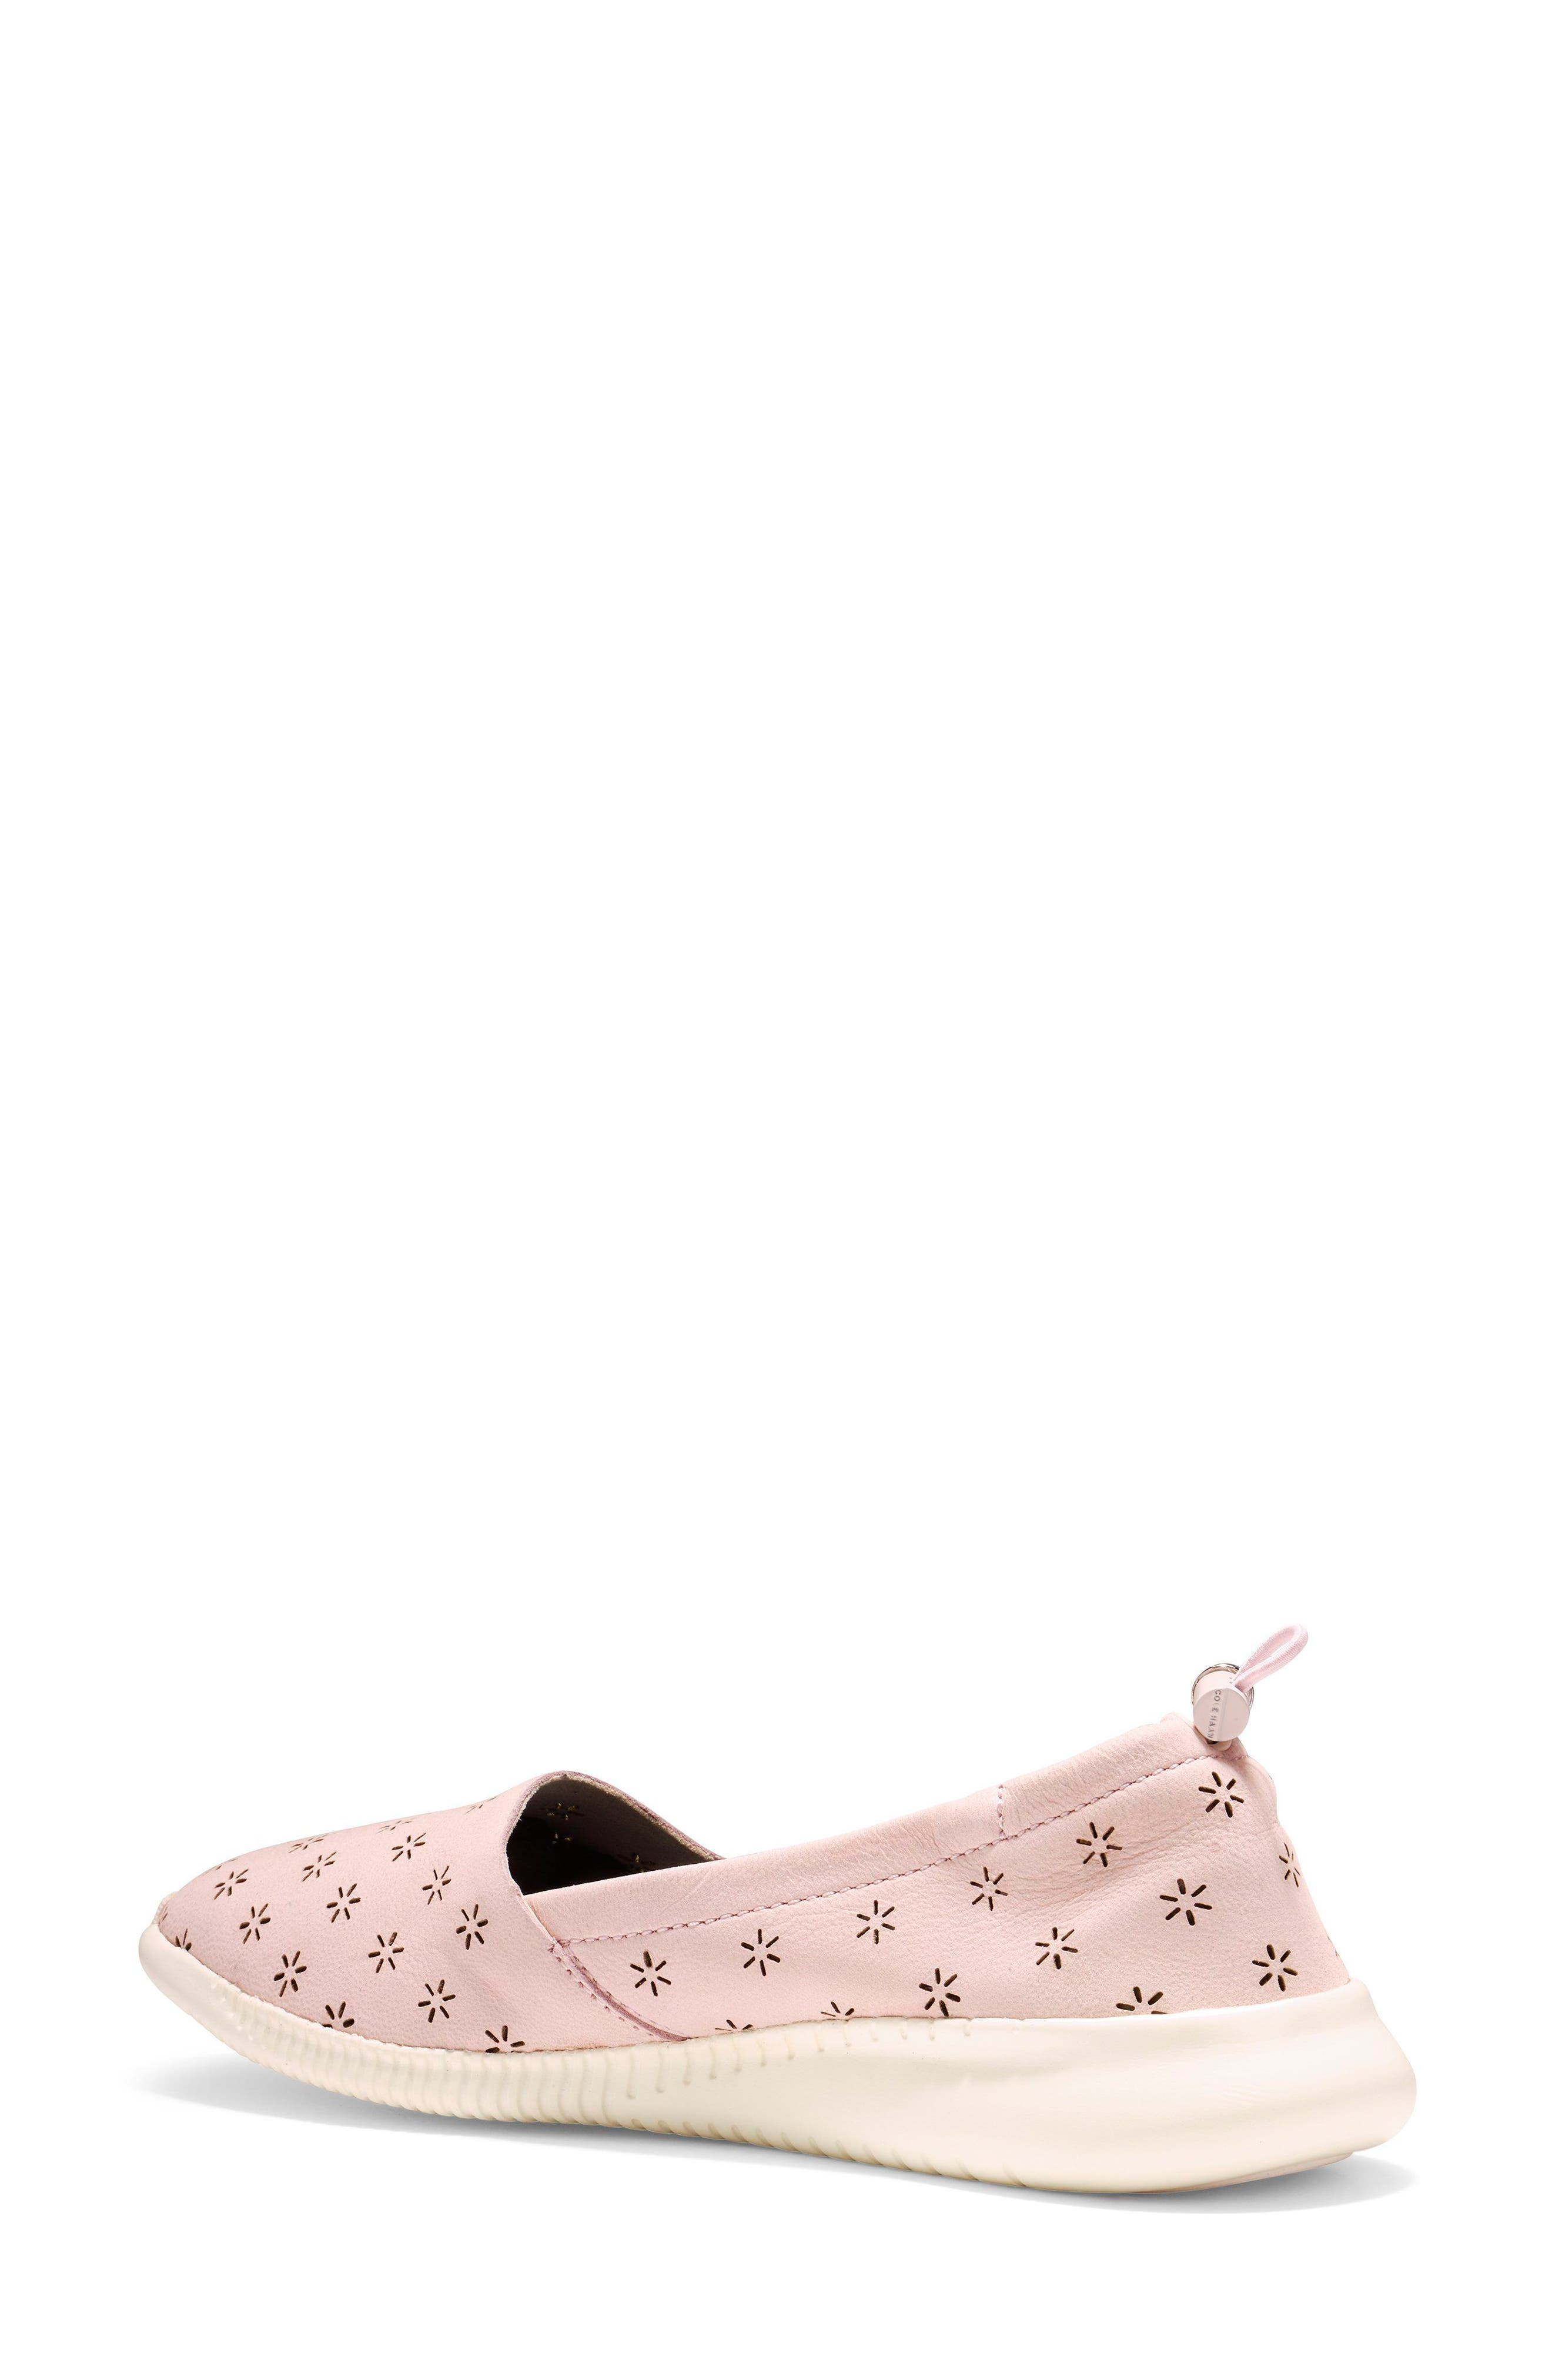 Studiogrand Perforated Slip-on,                             Alternate thumbnail 10, color,